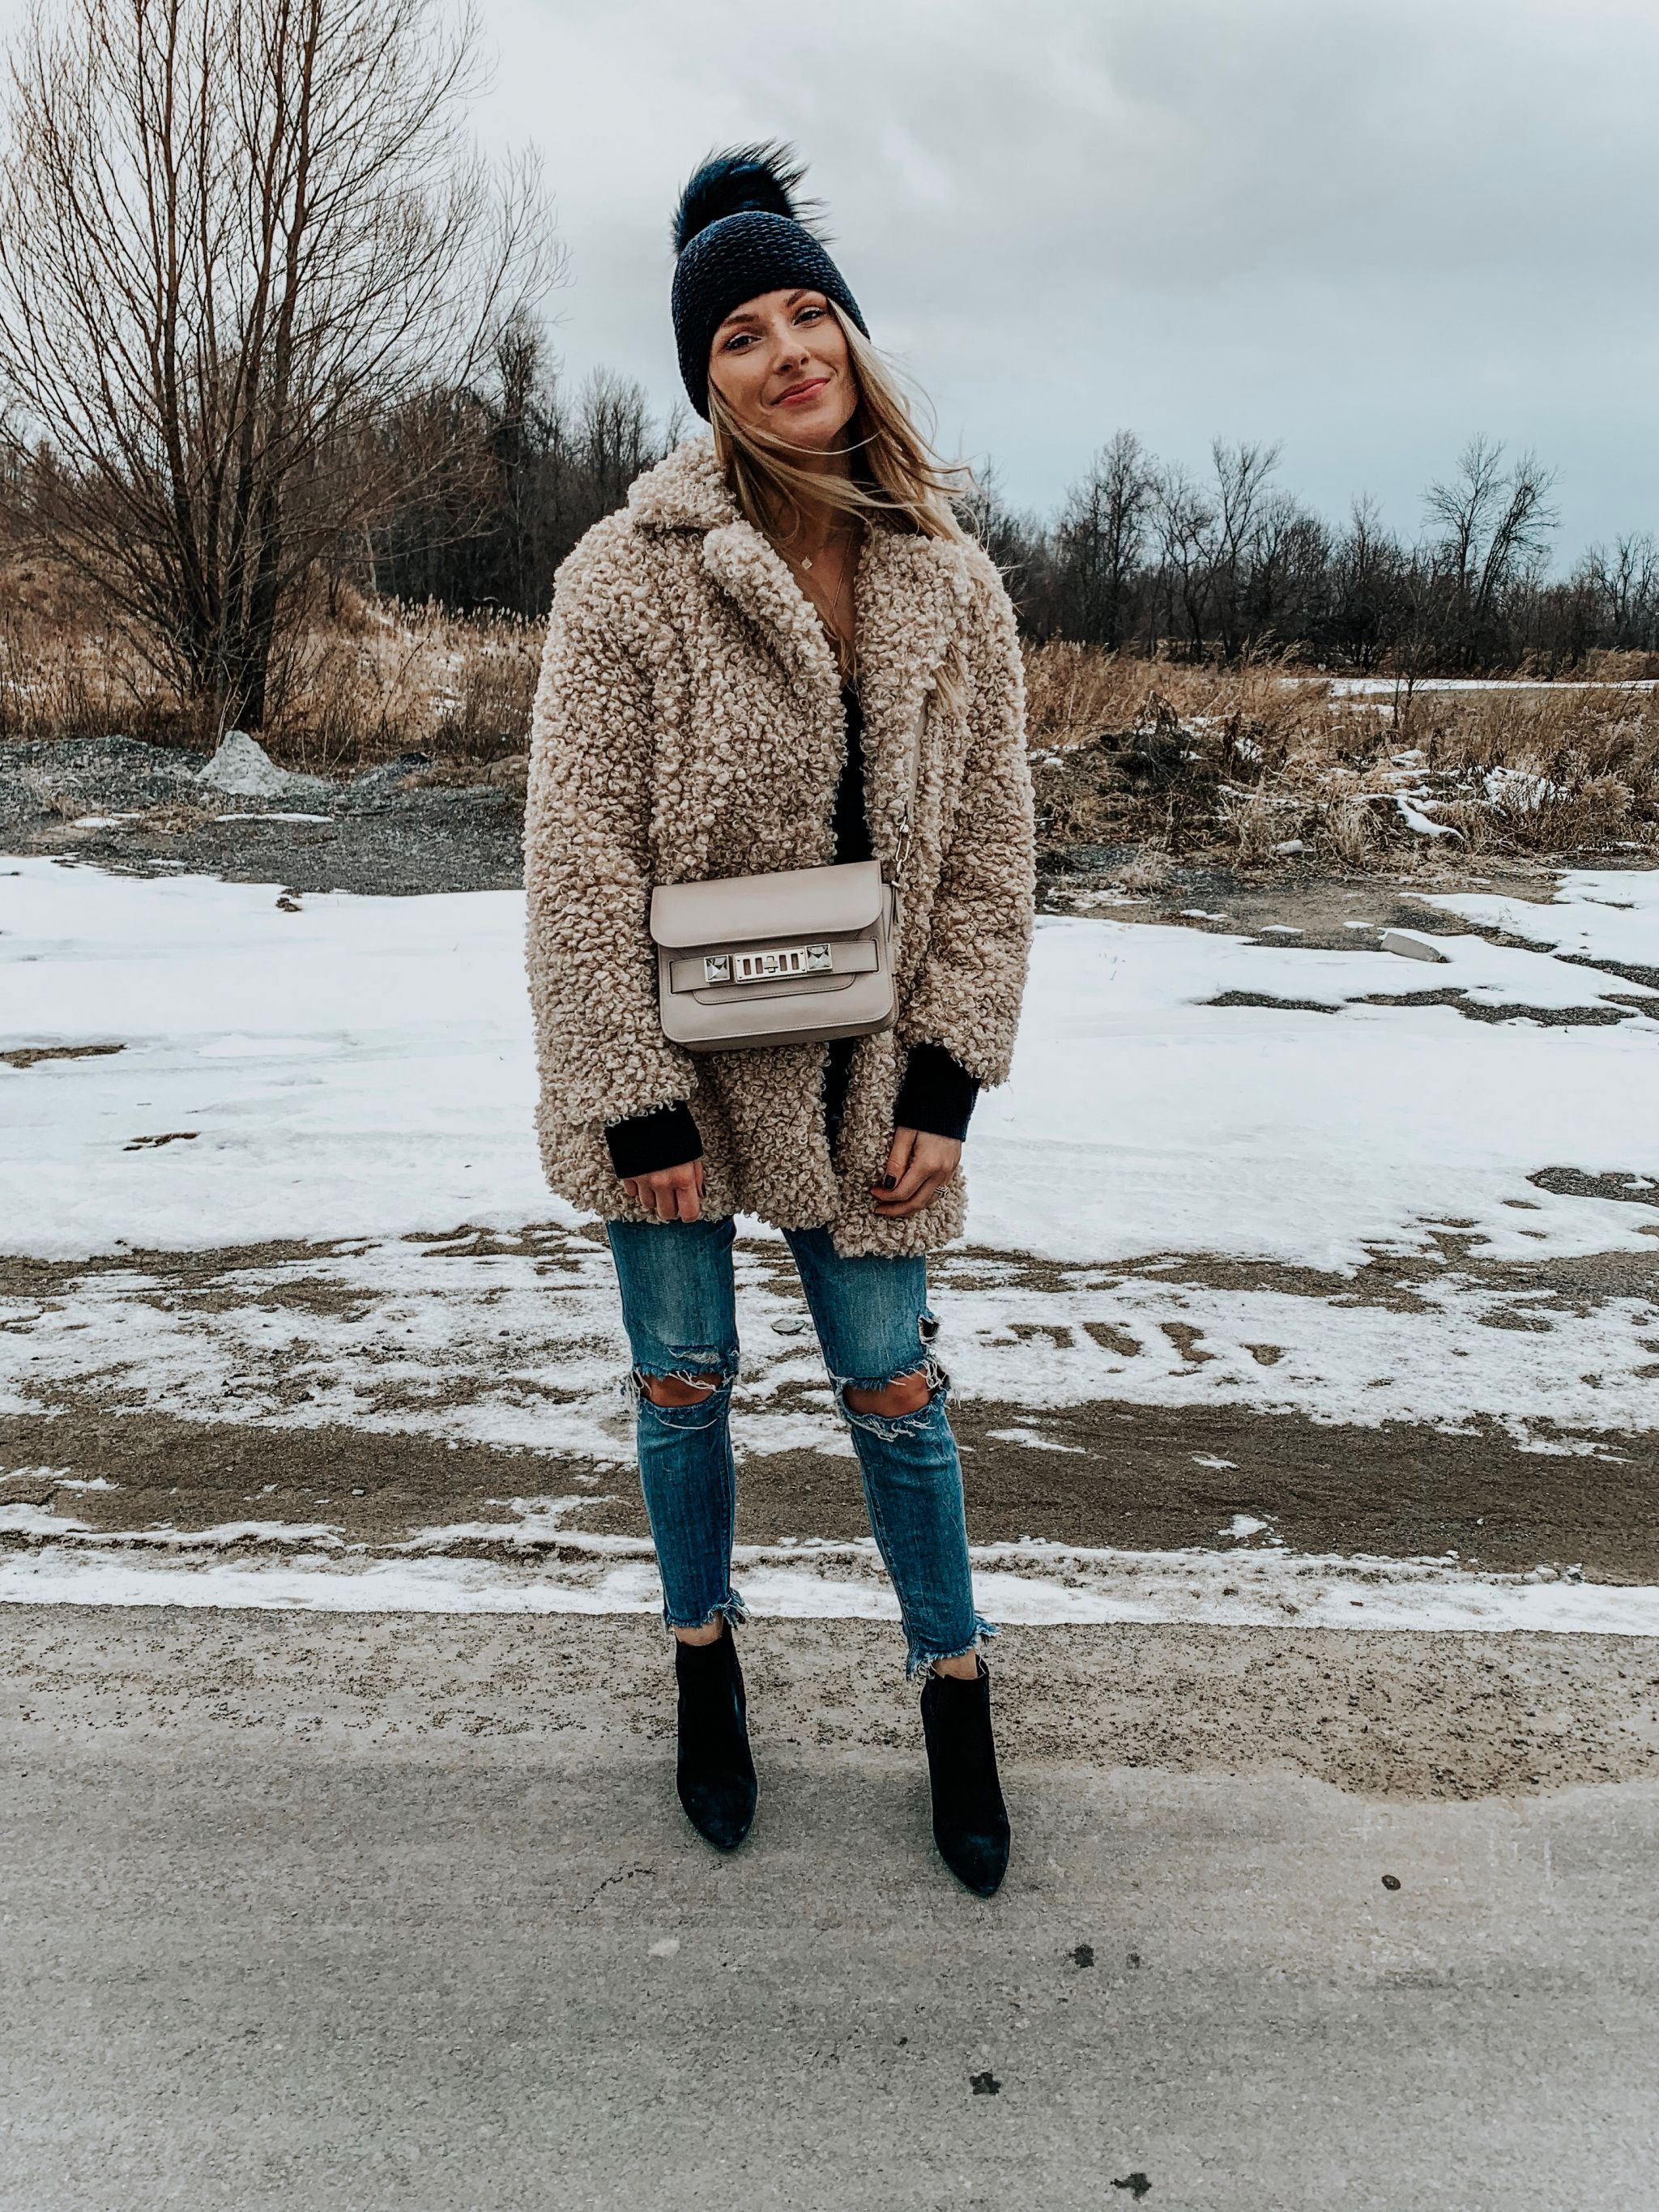 1 girl wearing teddy coat and jeans